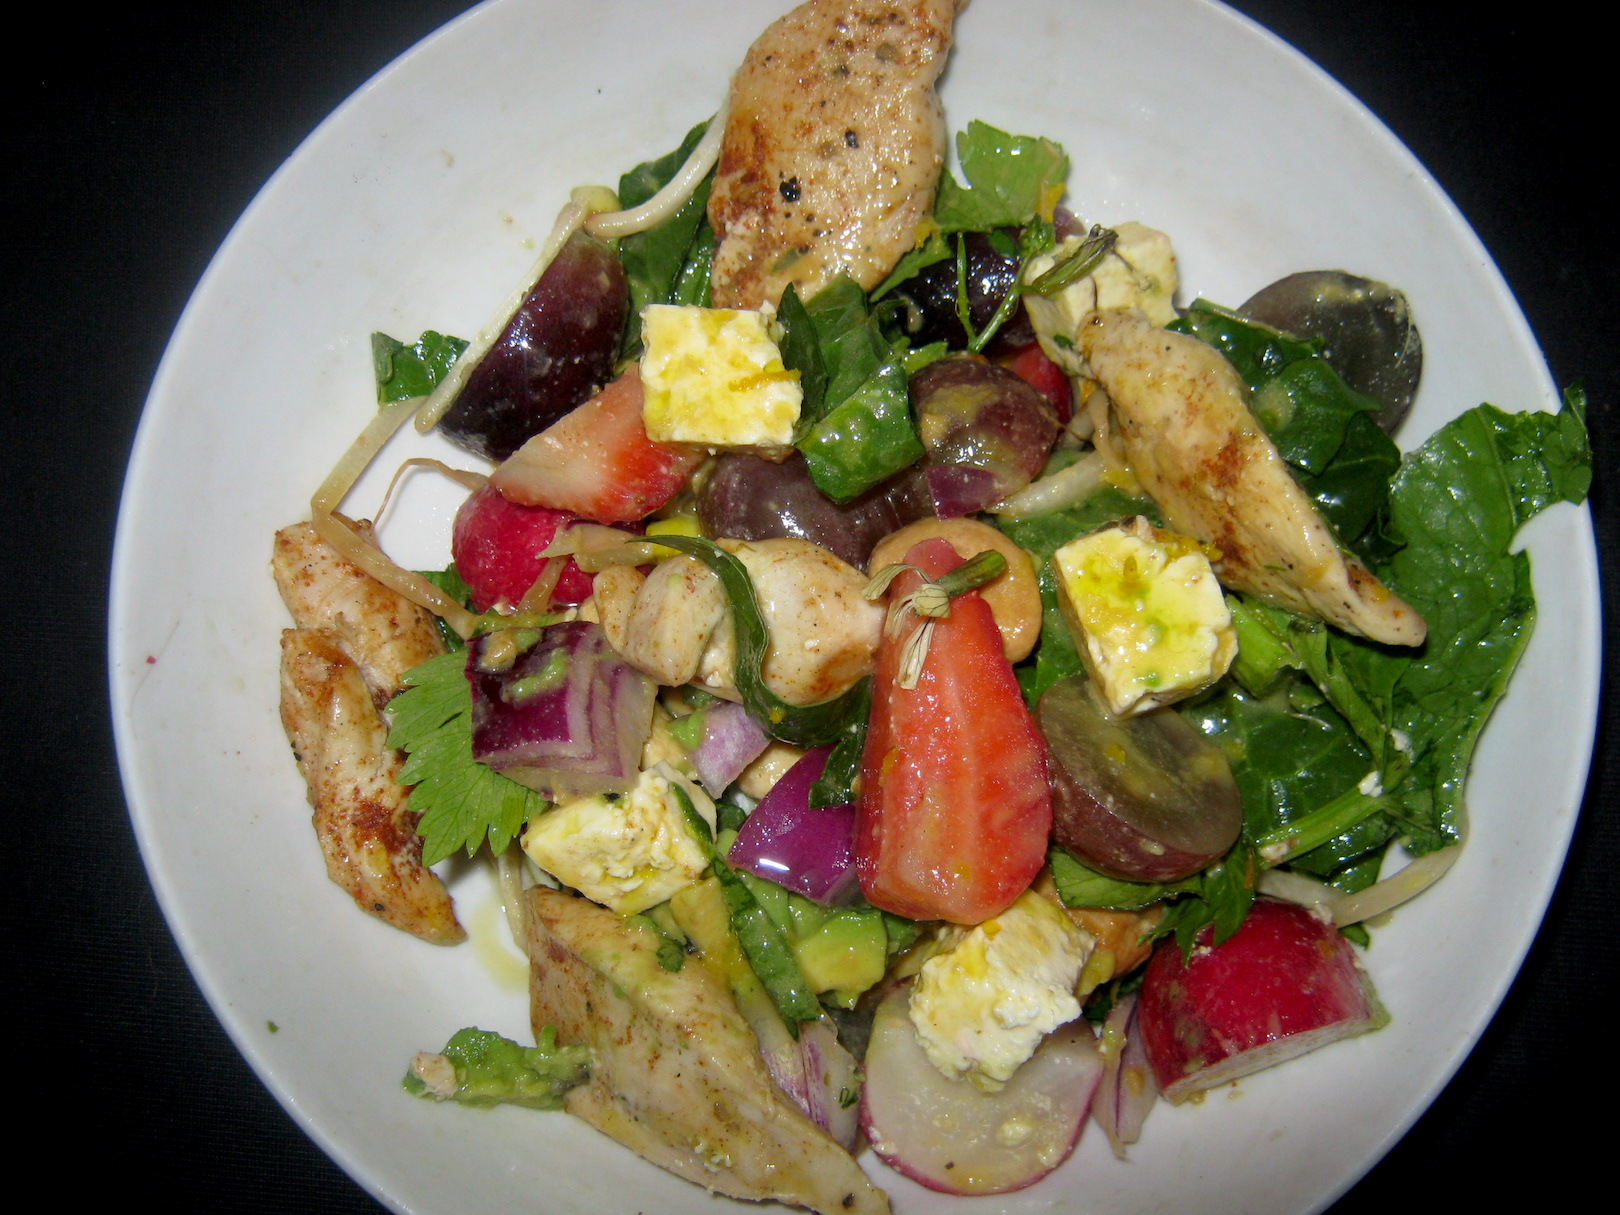 Salads like this can be Quick and Easy Healthy Recipes